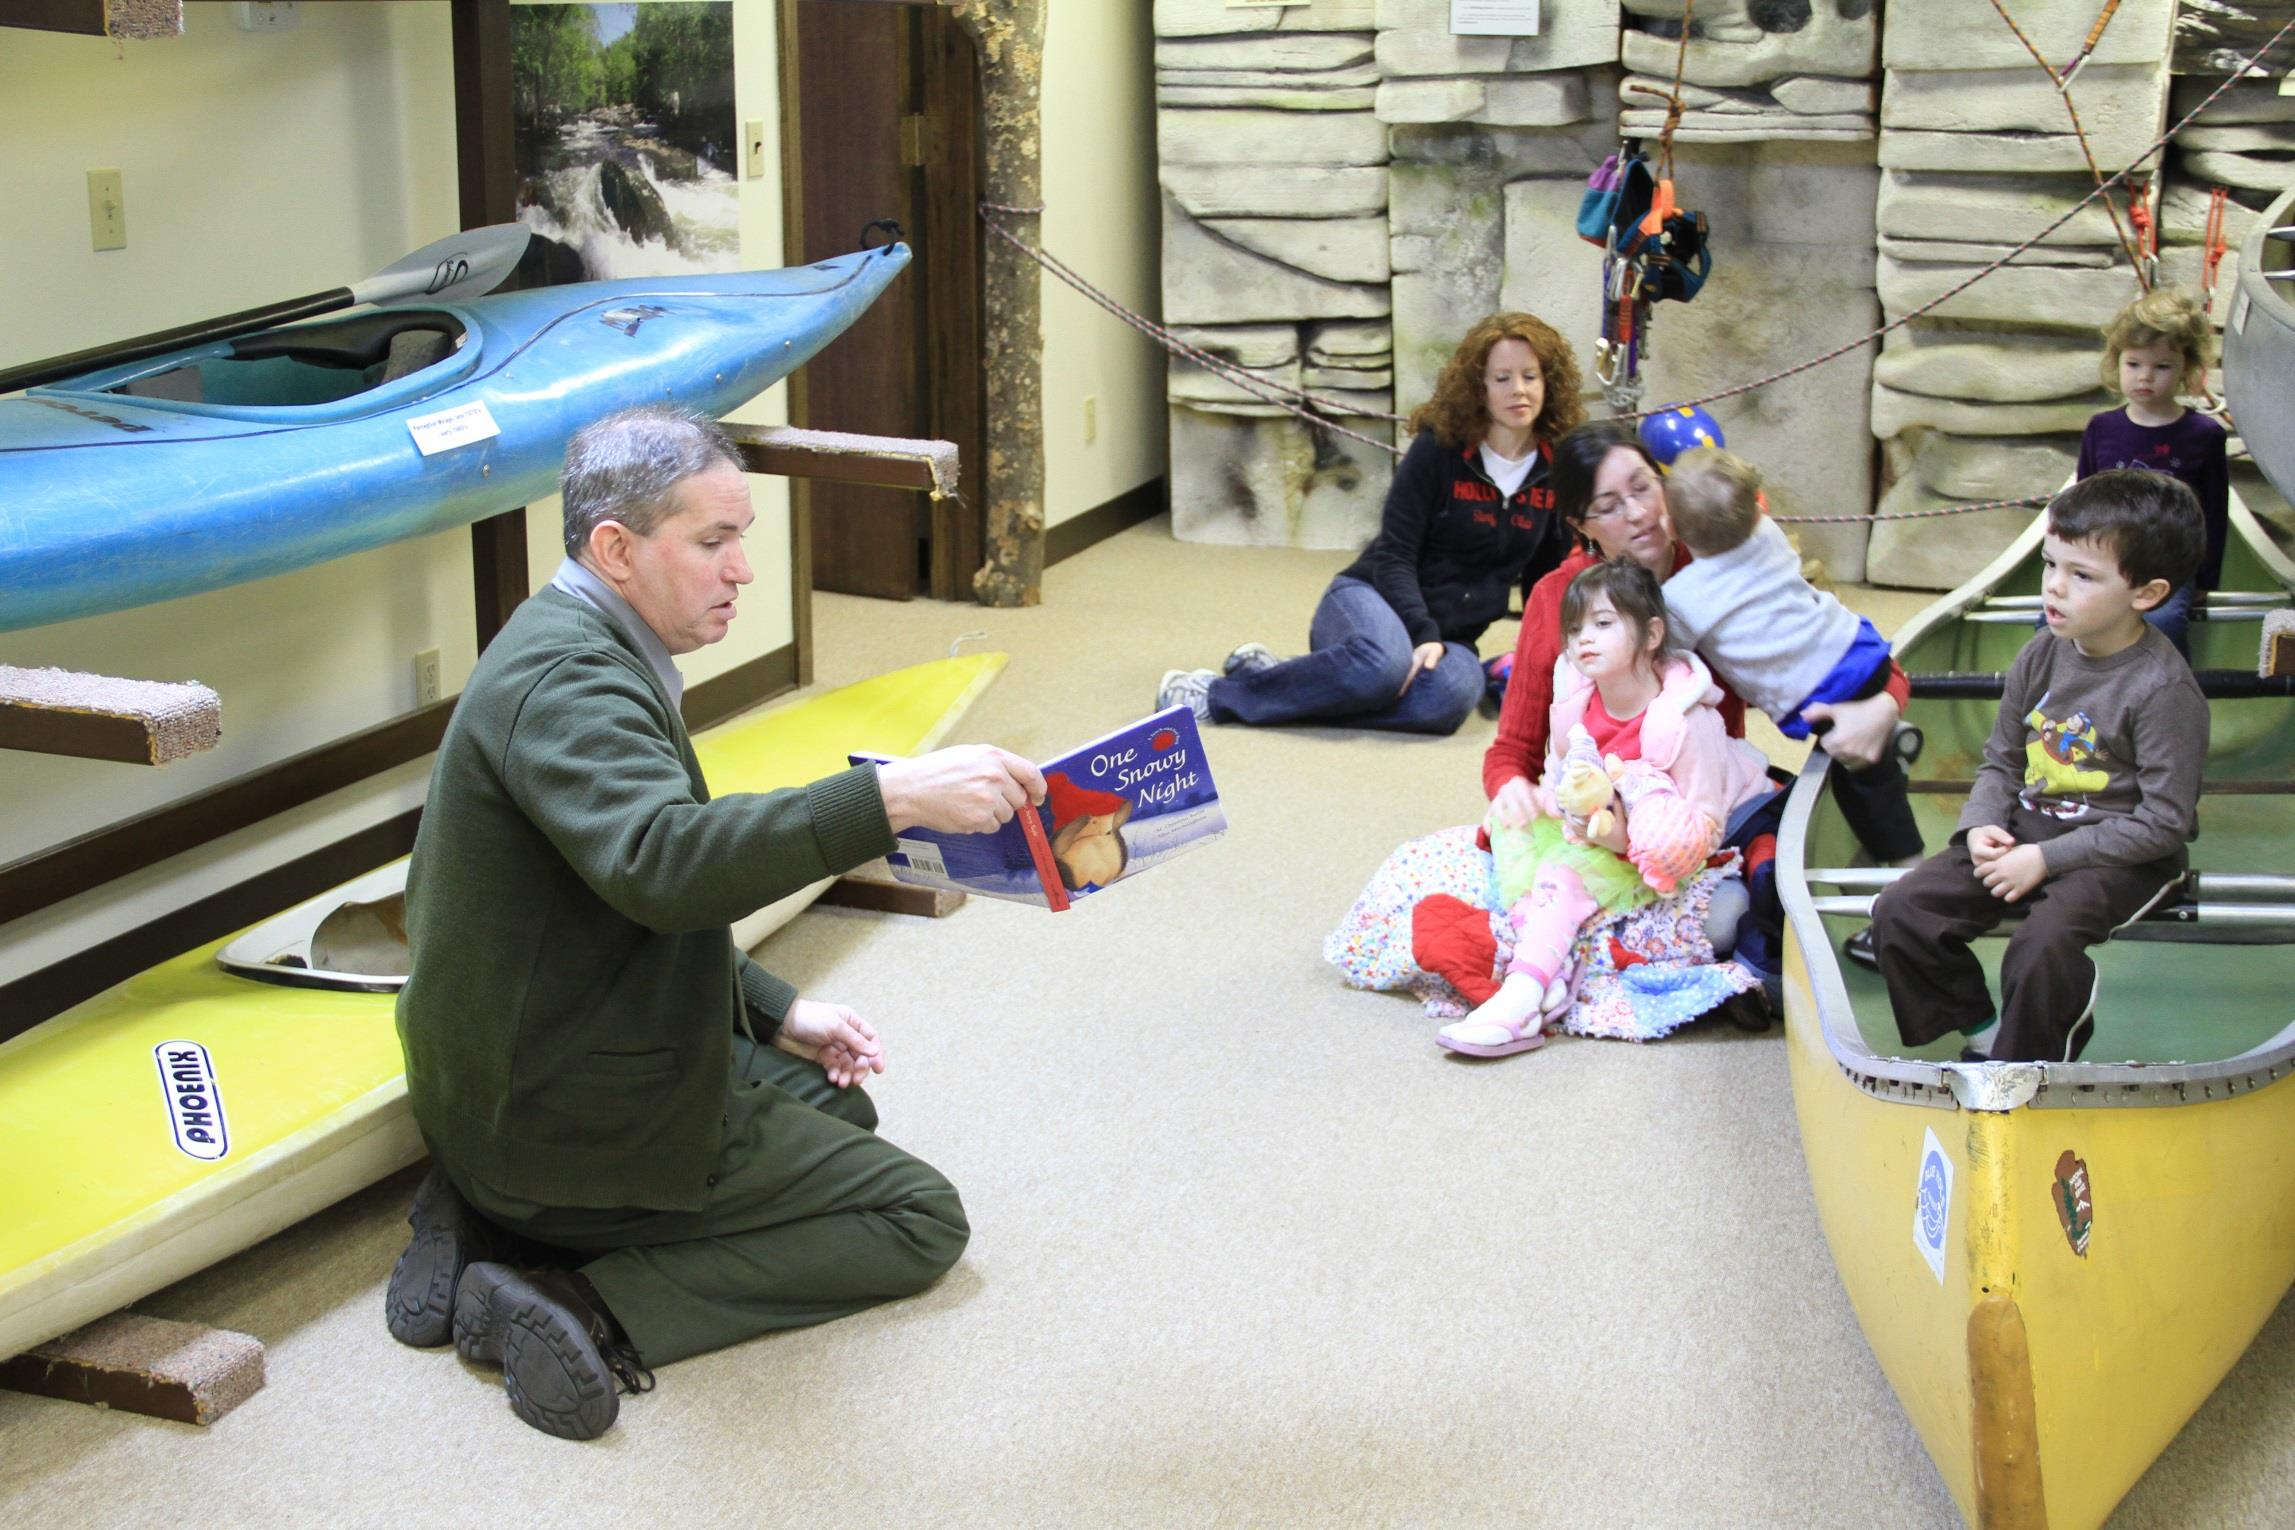 Ranger Joe telling story to kids